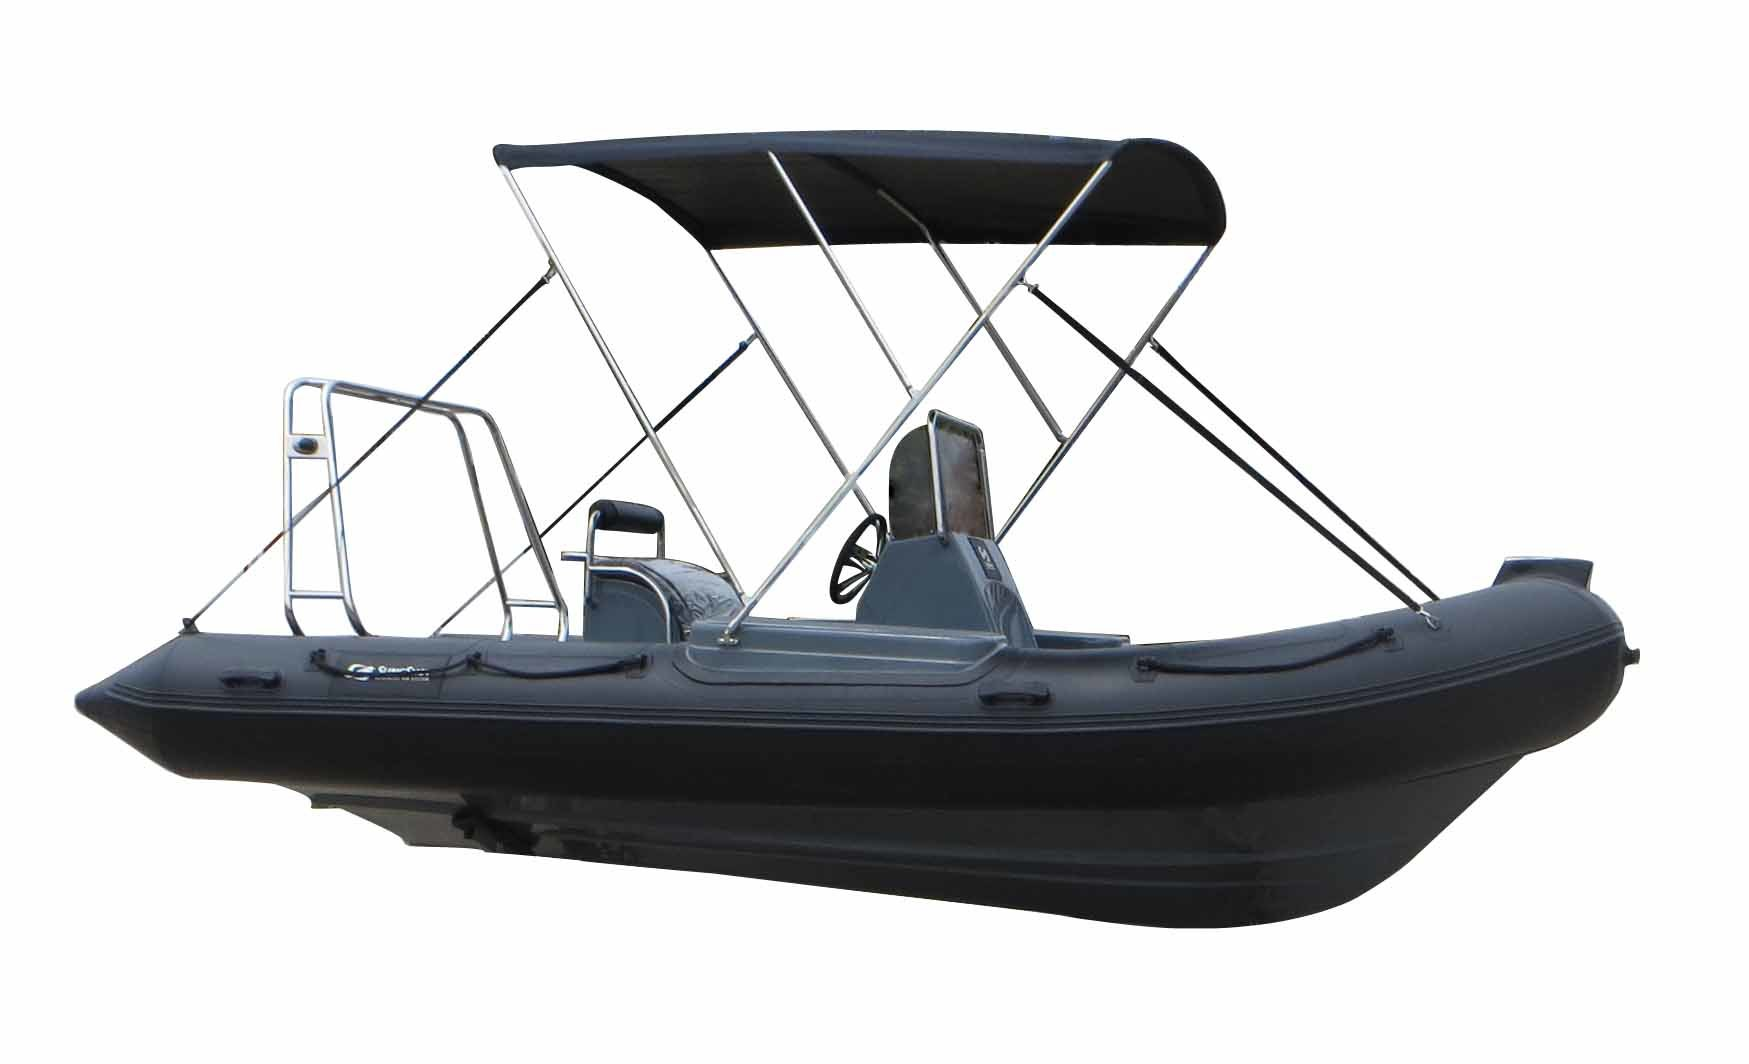 Aqualand 18feet 5.4m Rigid Inflatable Fishing Boat/Rib Rescue Patrol/Motor Boat (RIB540A)